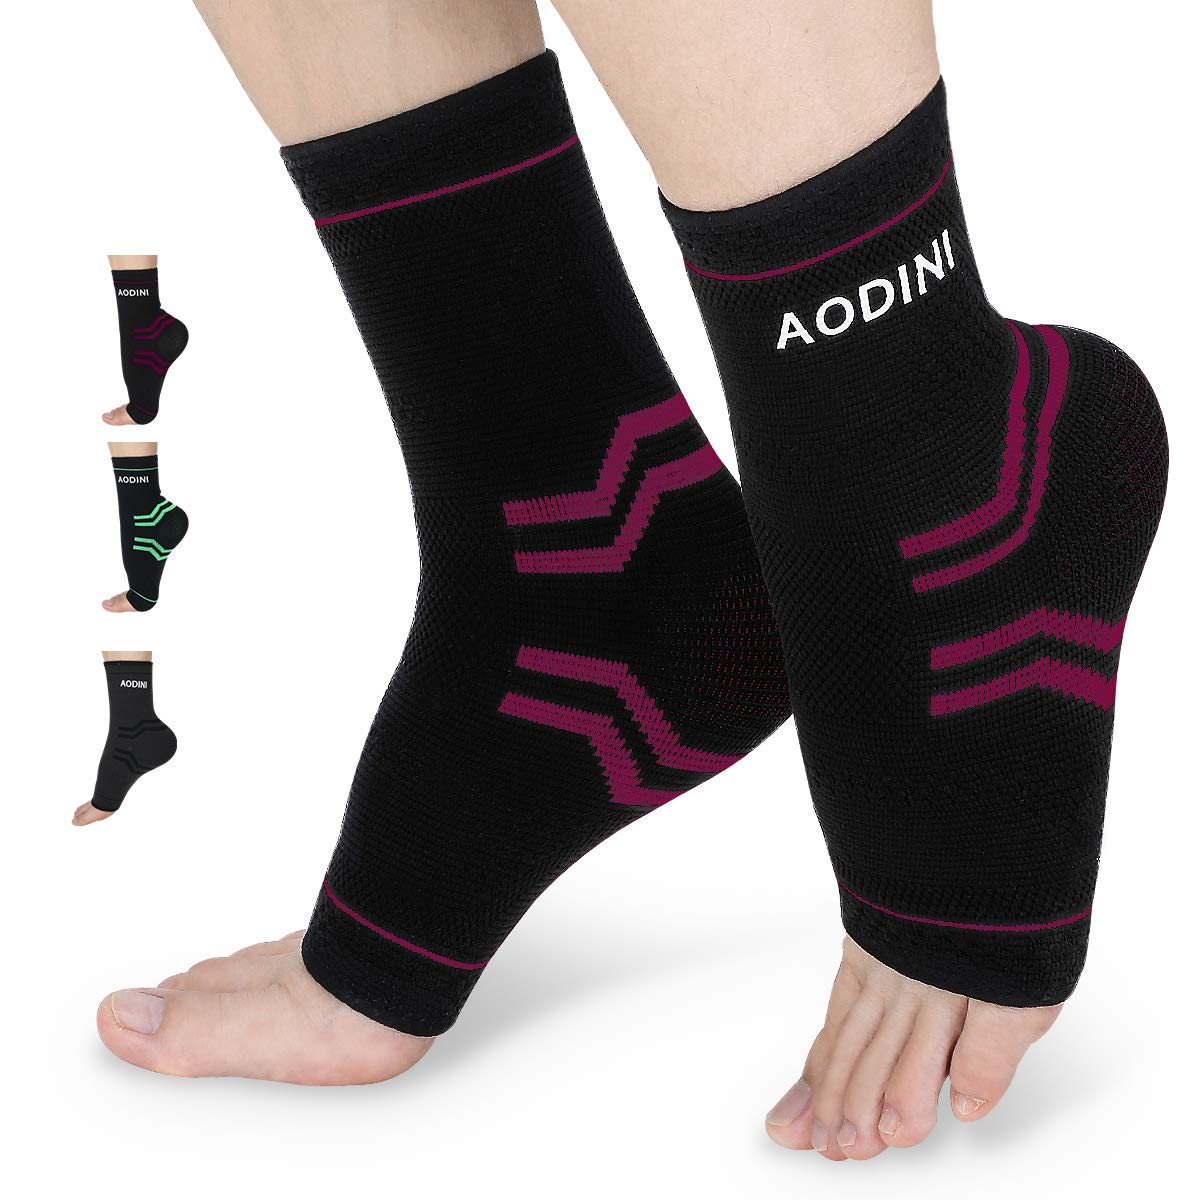 e6dc1a81bb Plantar Fasciitis Socks, AODINI High Arch Support Foot Compression Sleeves  for Men & Women, Ankle Support Socks for Foot and Heel Pain Relief, ...